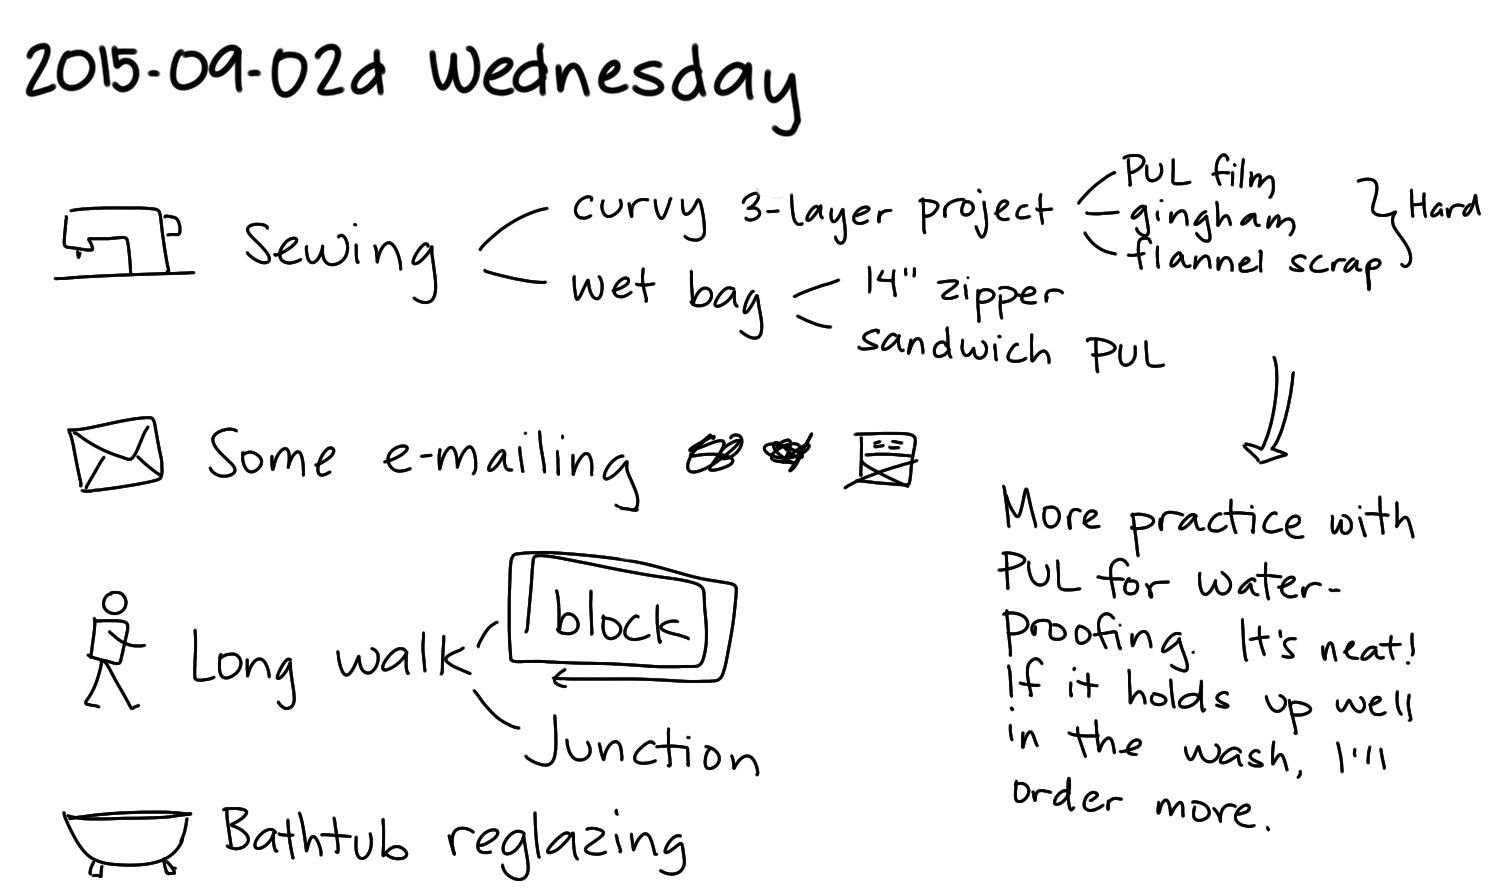 2015-09-02d Wednesday -- index card #journal.png